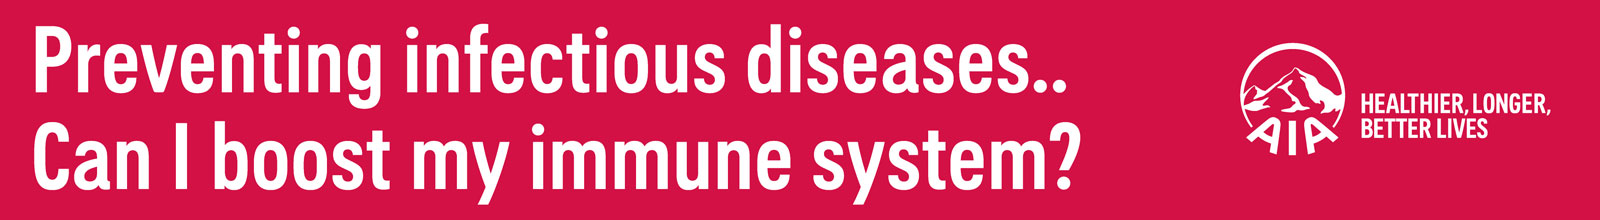 Preventing-Infectious-Diseases-(003)-living